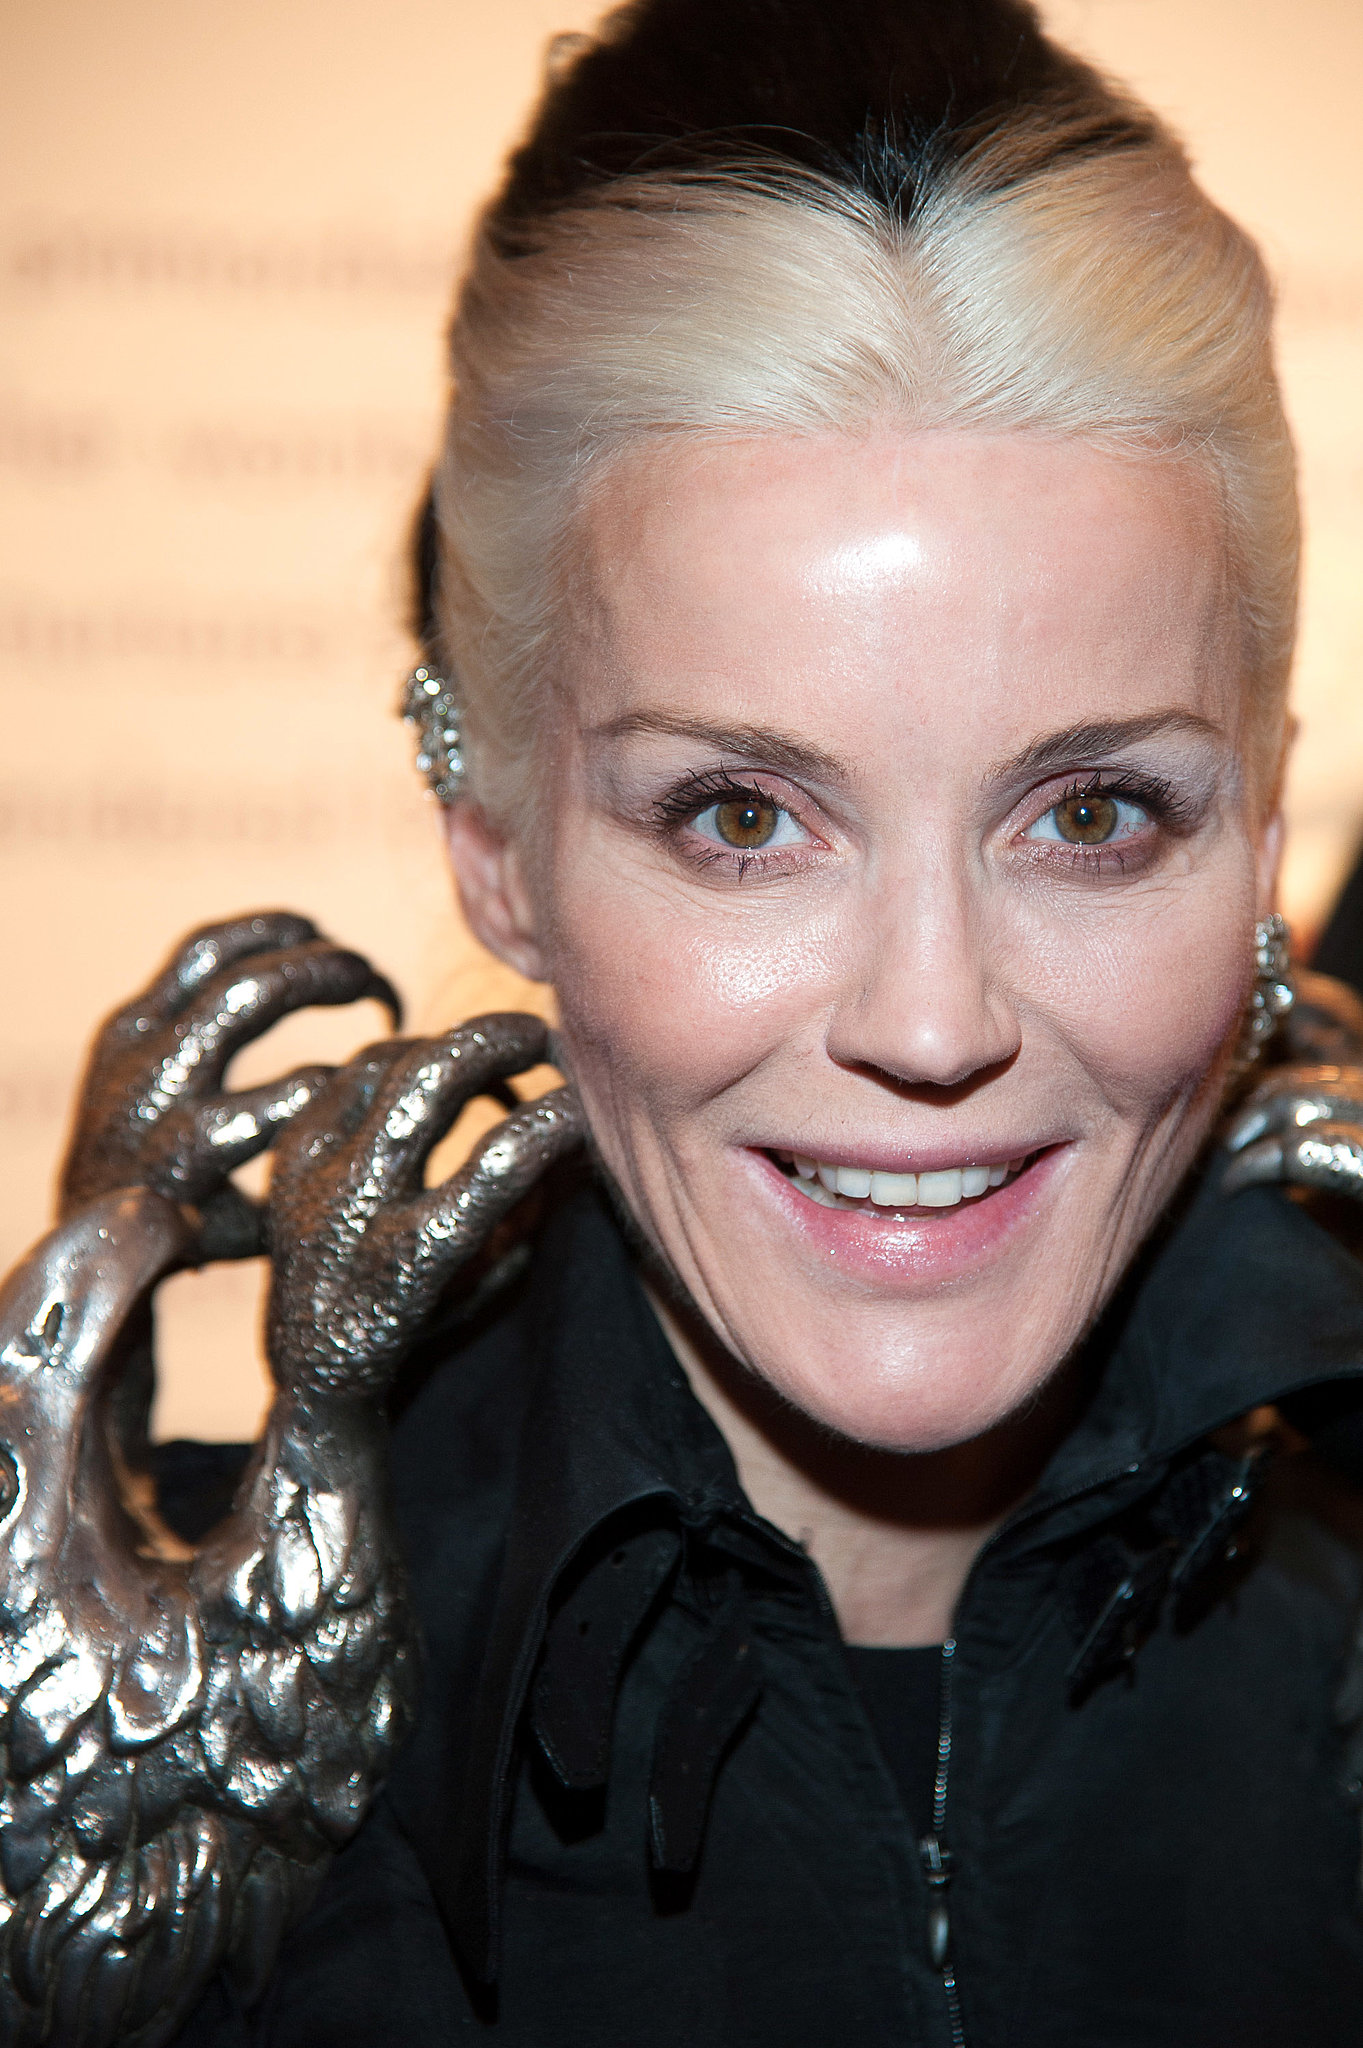 The 49-year old daughter of father Jonathan Guinness and mother Suzanne Lisney, 173 cm tall Daphne Guinness in 2017 photo